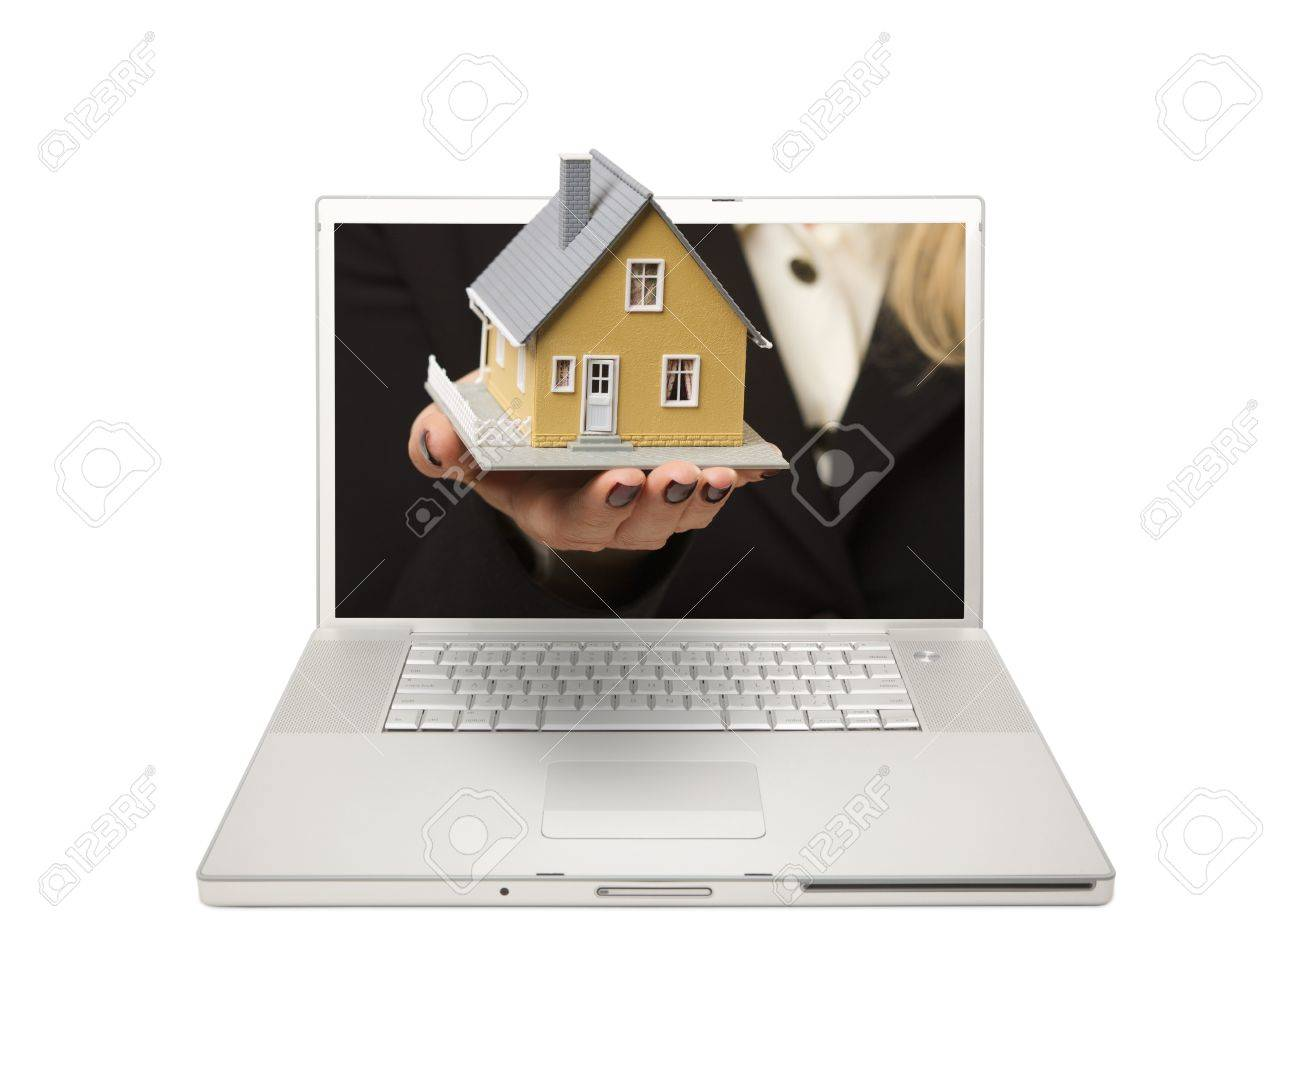 Woman Handing House Through Laptop Screen Isolated on a White  Background. Stock Photo - 7086925